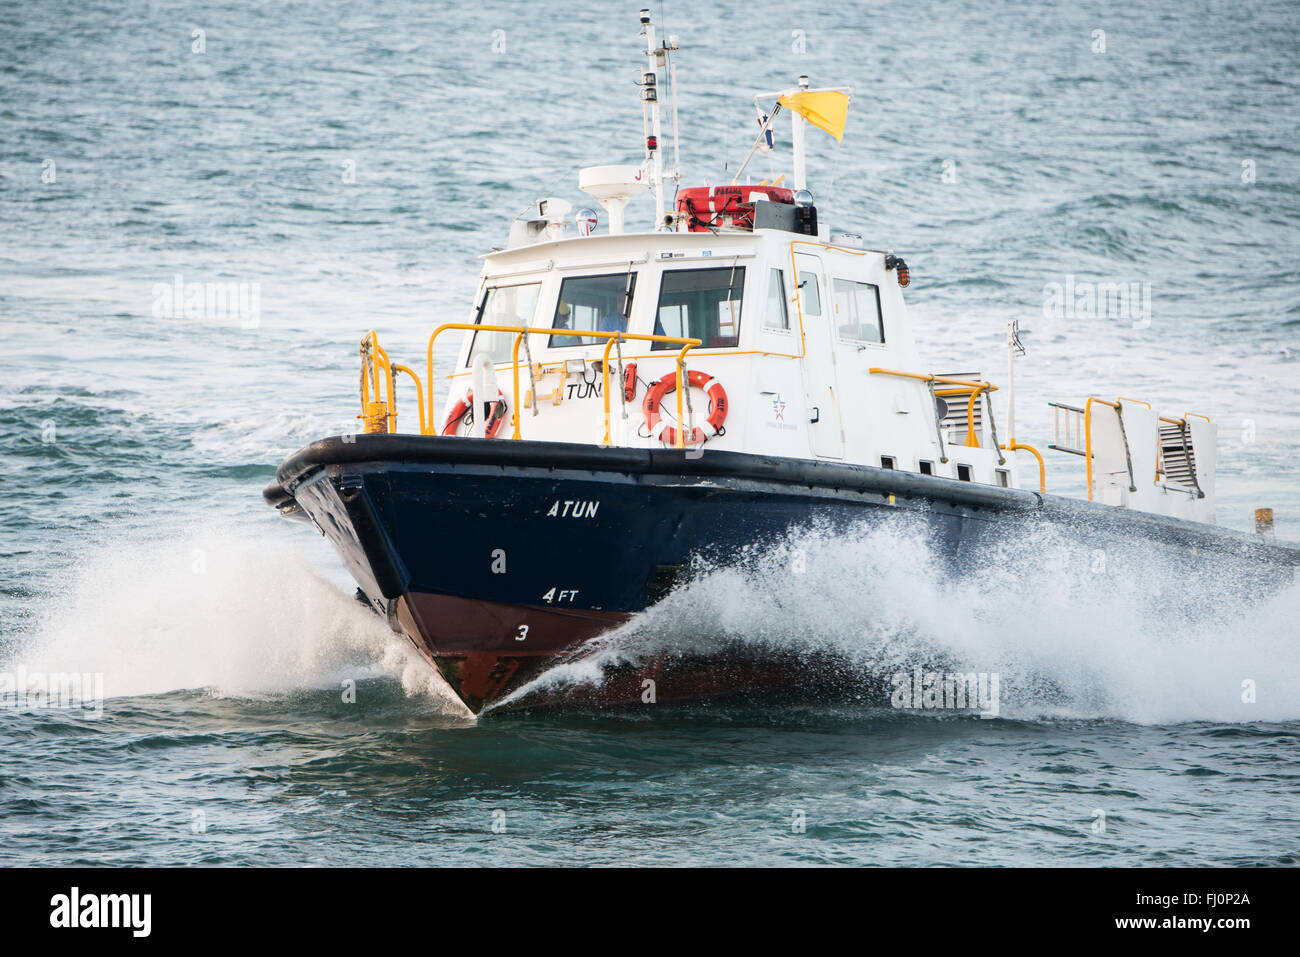 PANAMA CANAL, Panama--A pilot boat drops off a pilot to a ship about to enter the Panama Canal. Every ship entering - Stock Image